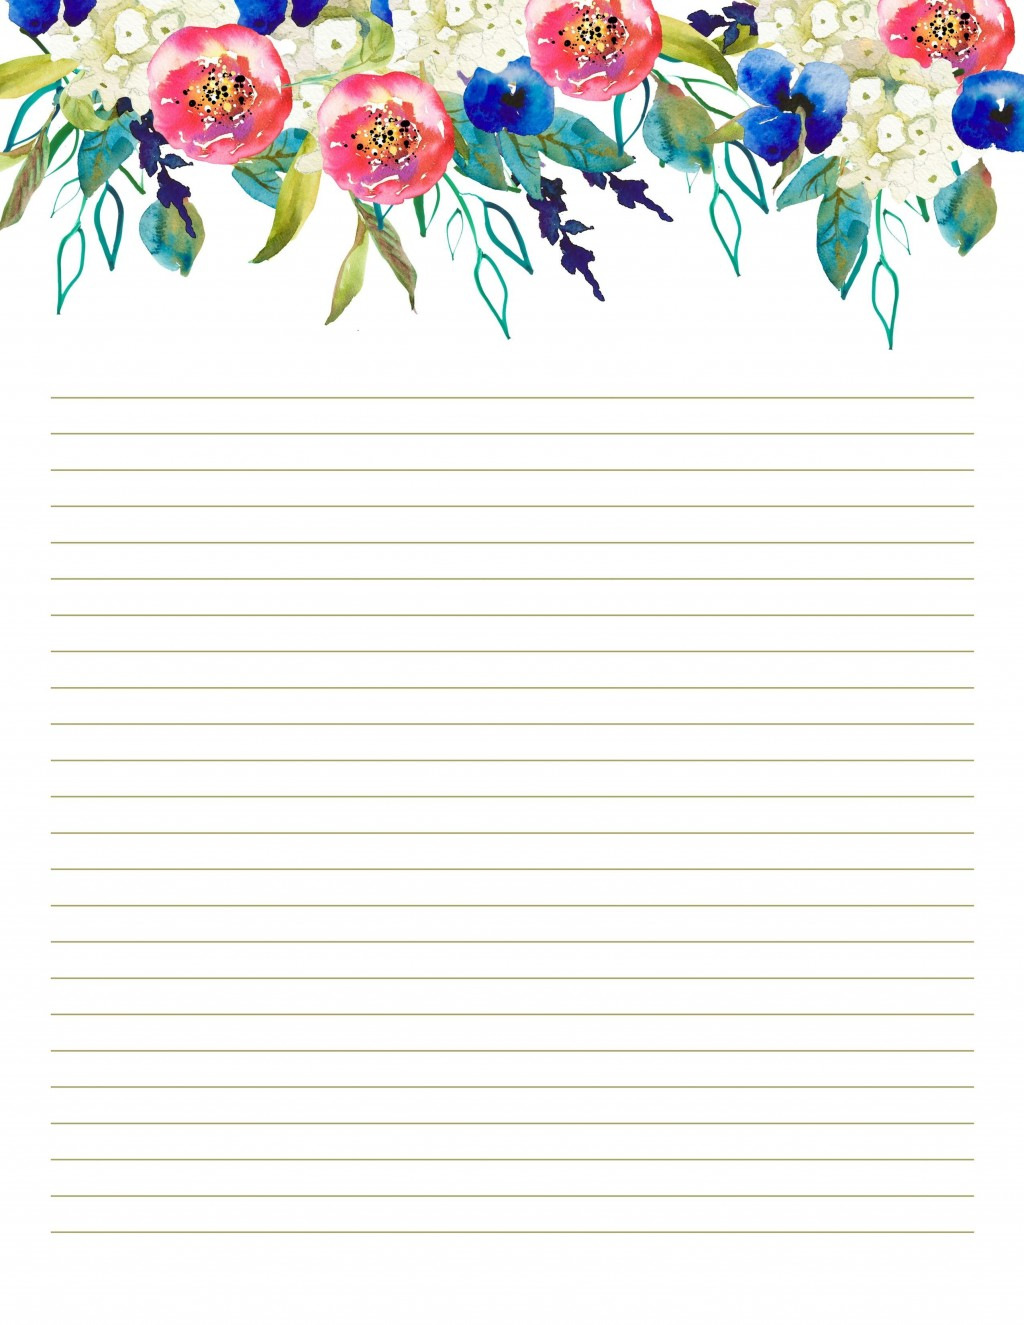 007 Top Free Printable Stationery Paper Template Design  TemplatesLarge